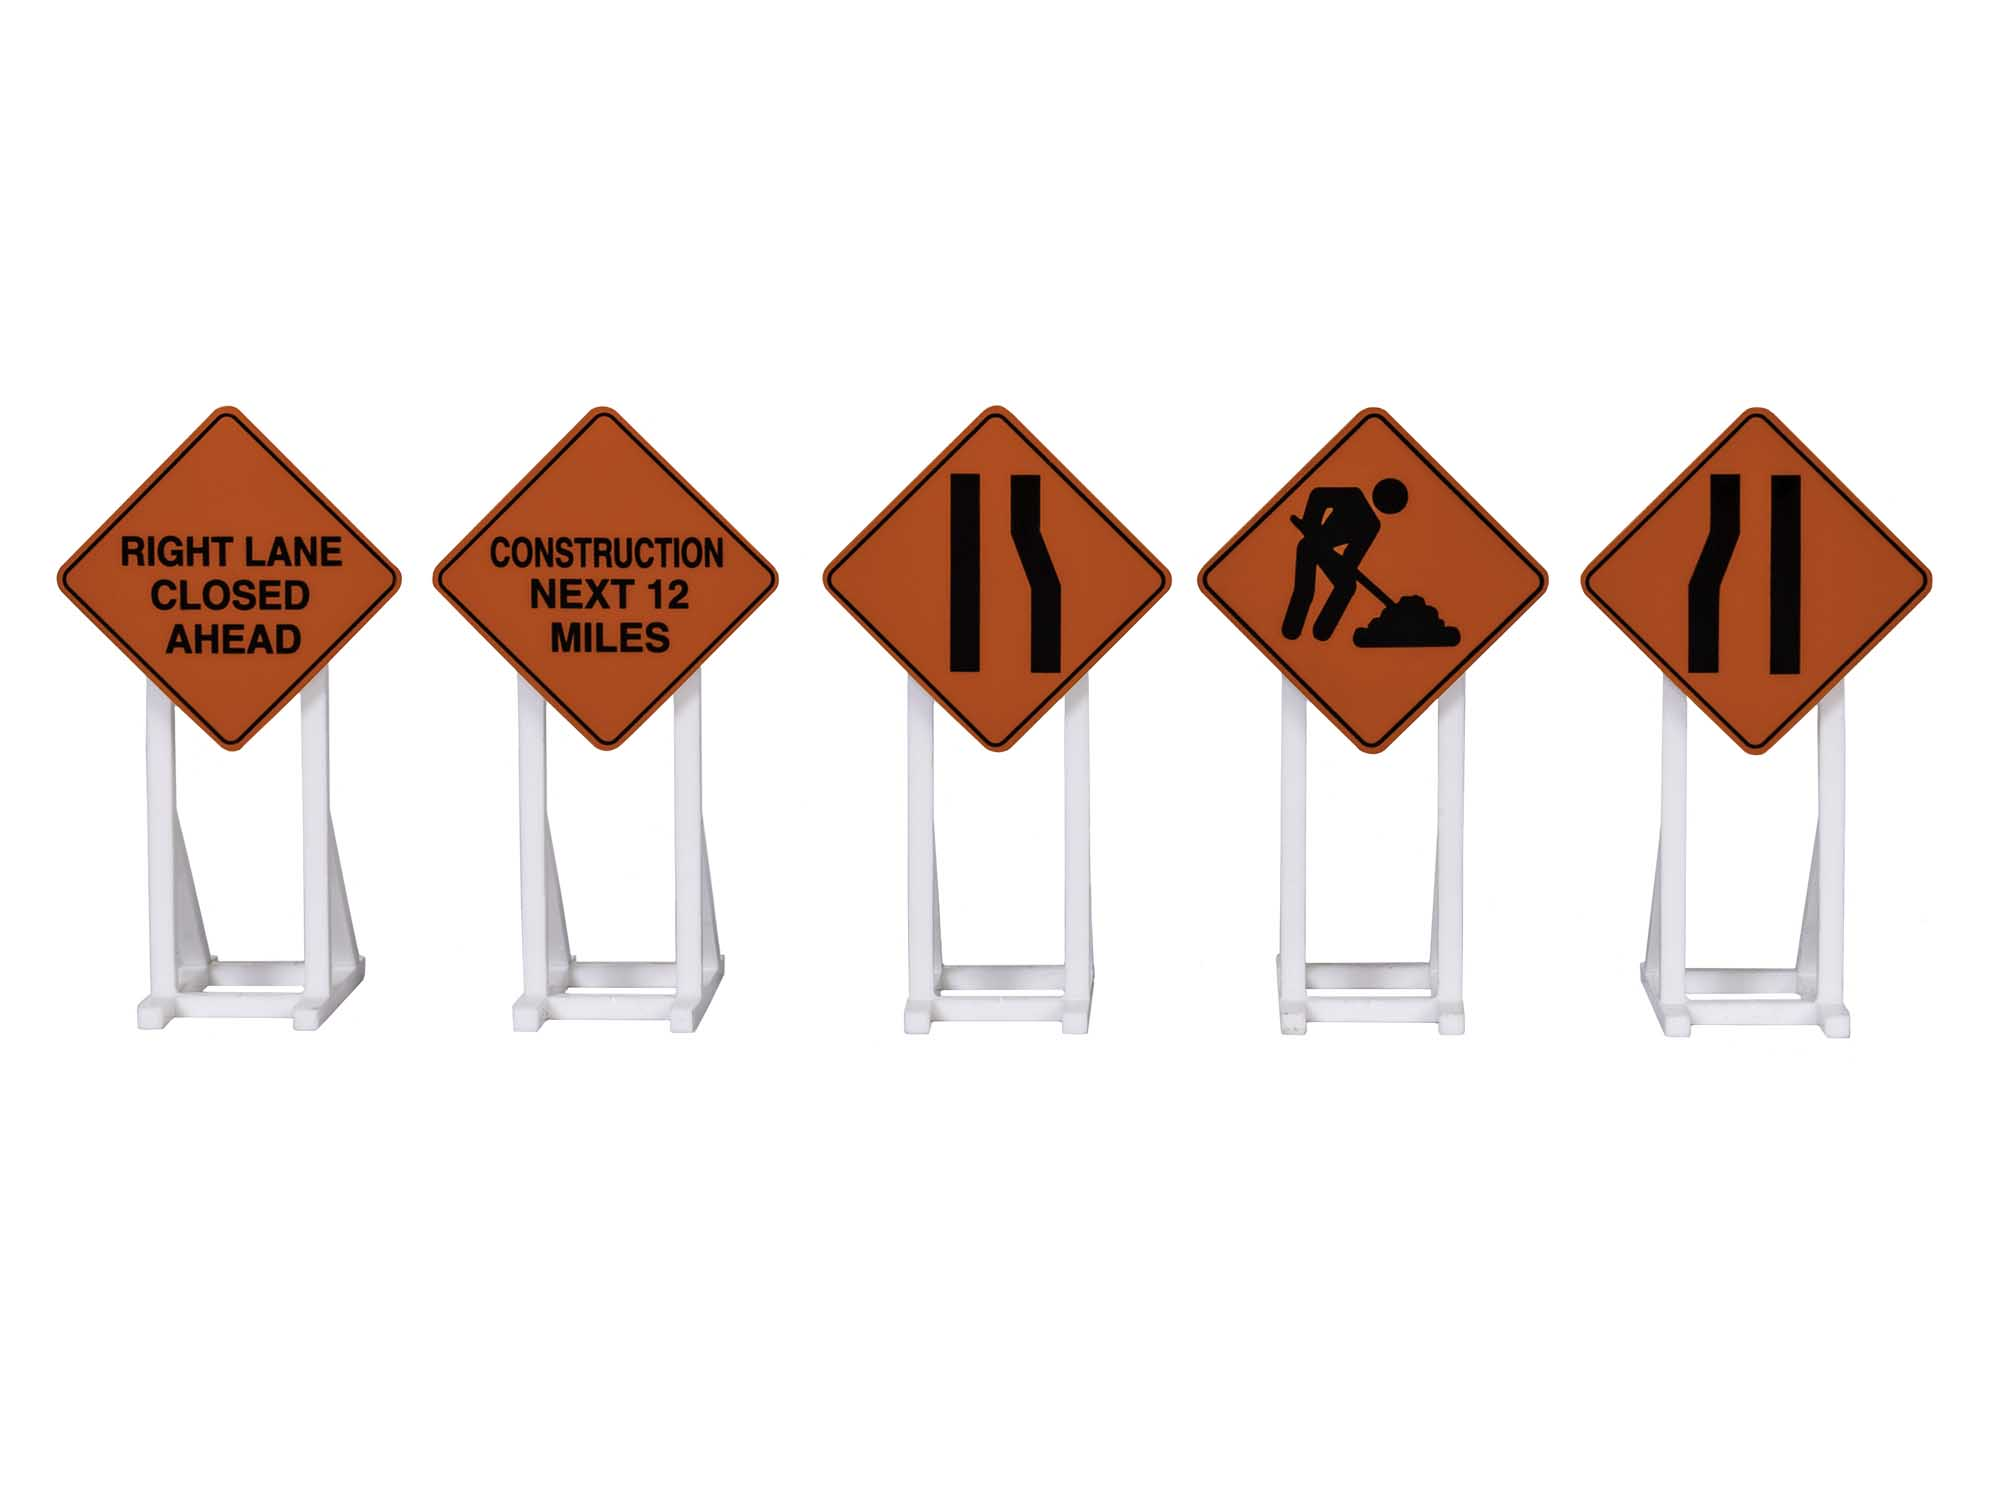 Lionel 2030240 Construction Signs 5-pack